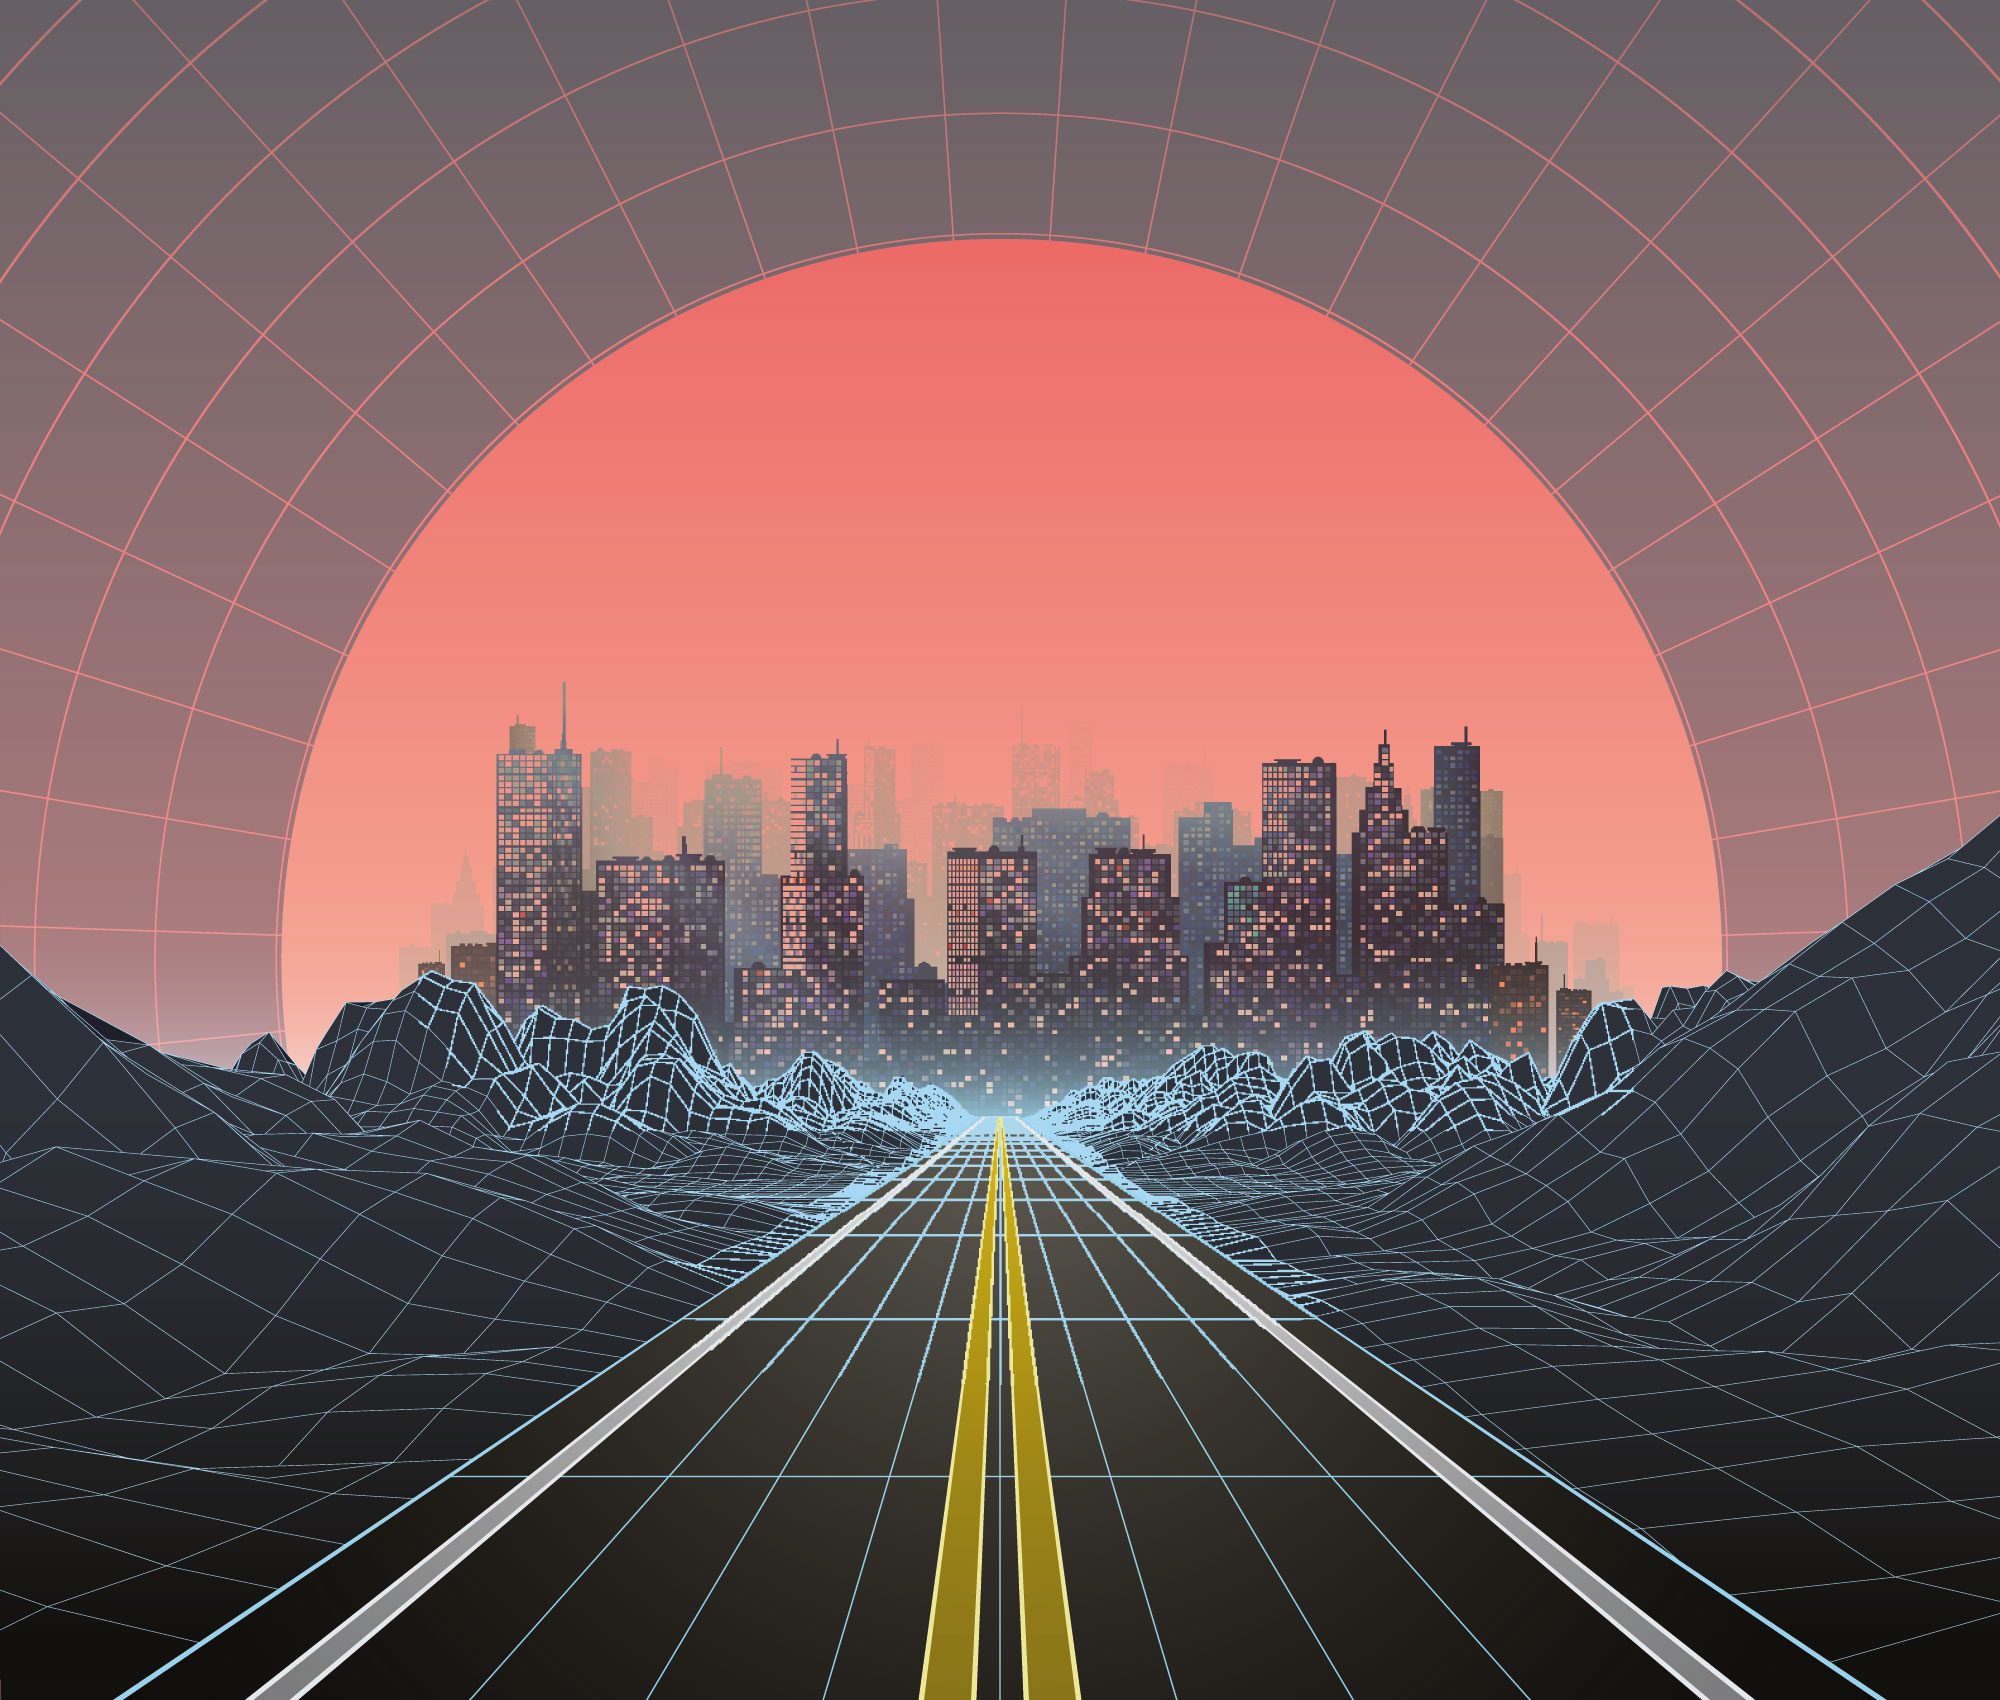 landscape-road-city-sunset-retro-80s-abstract